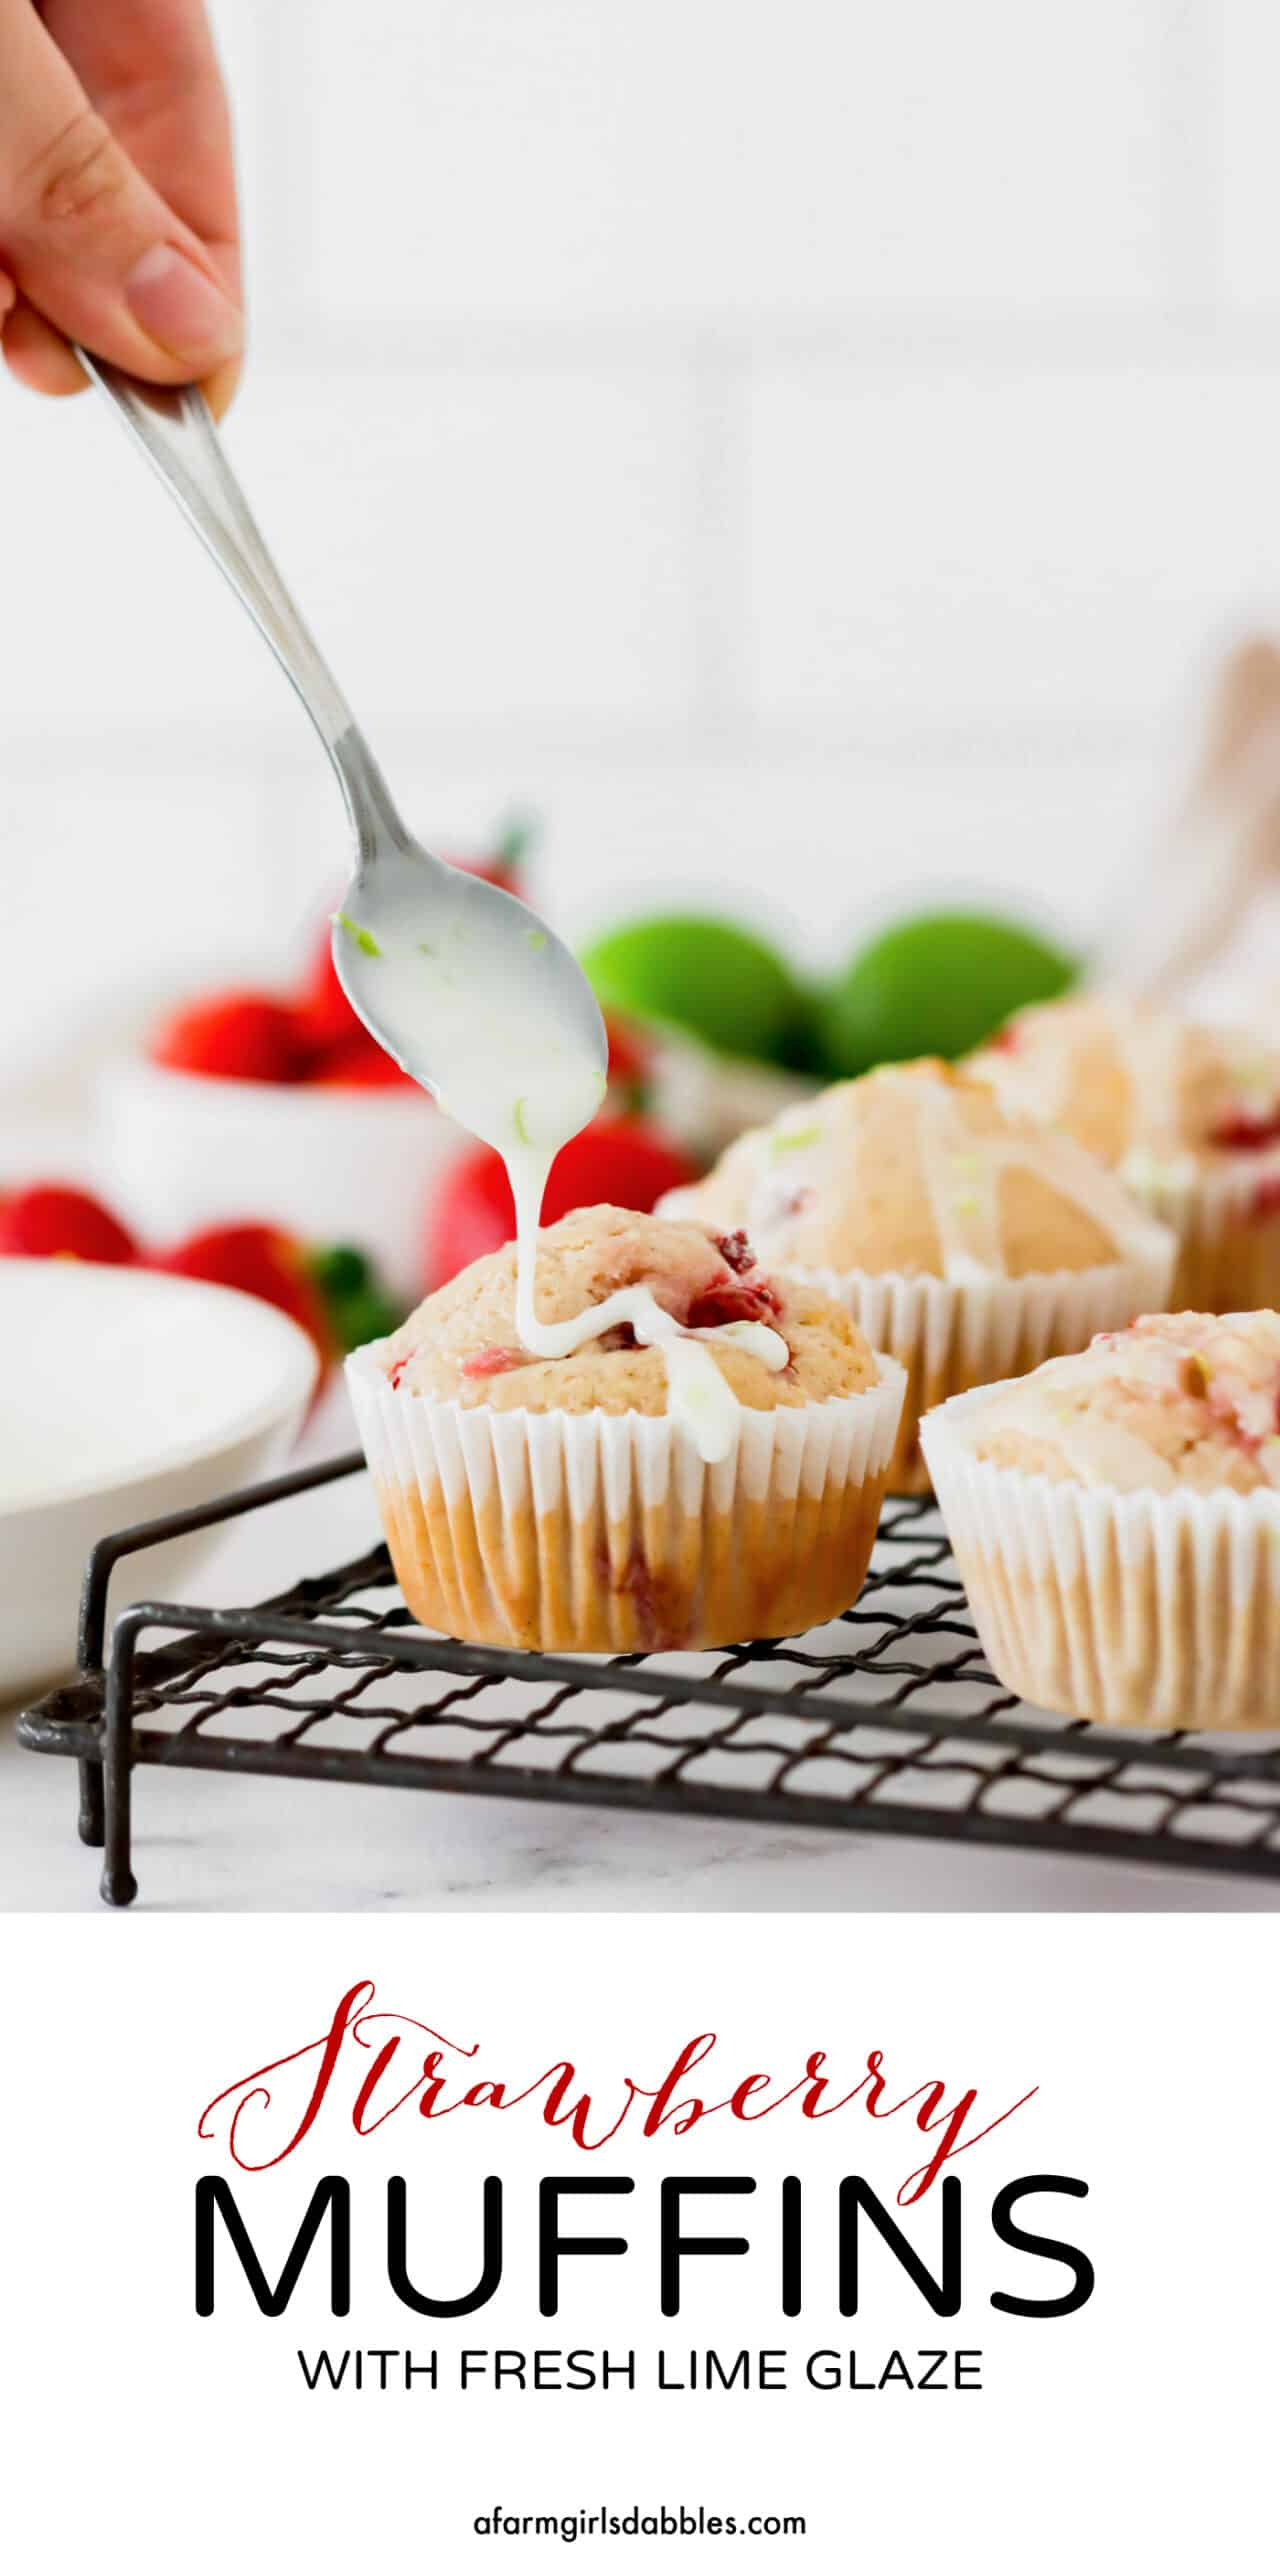 Pinterest image for Strawberry Muffins